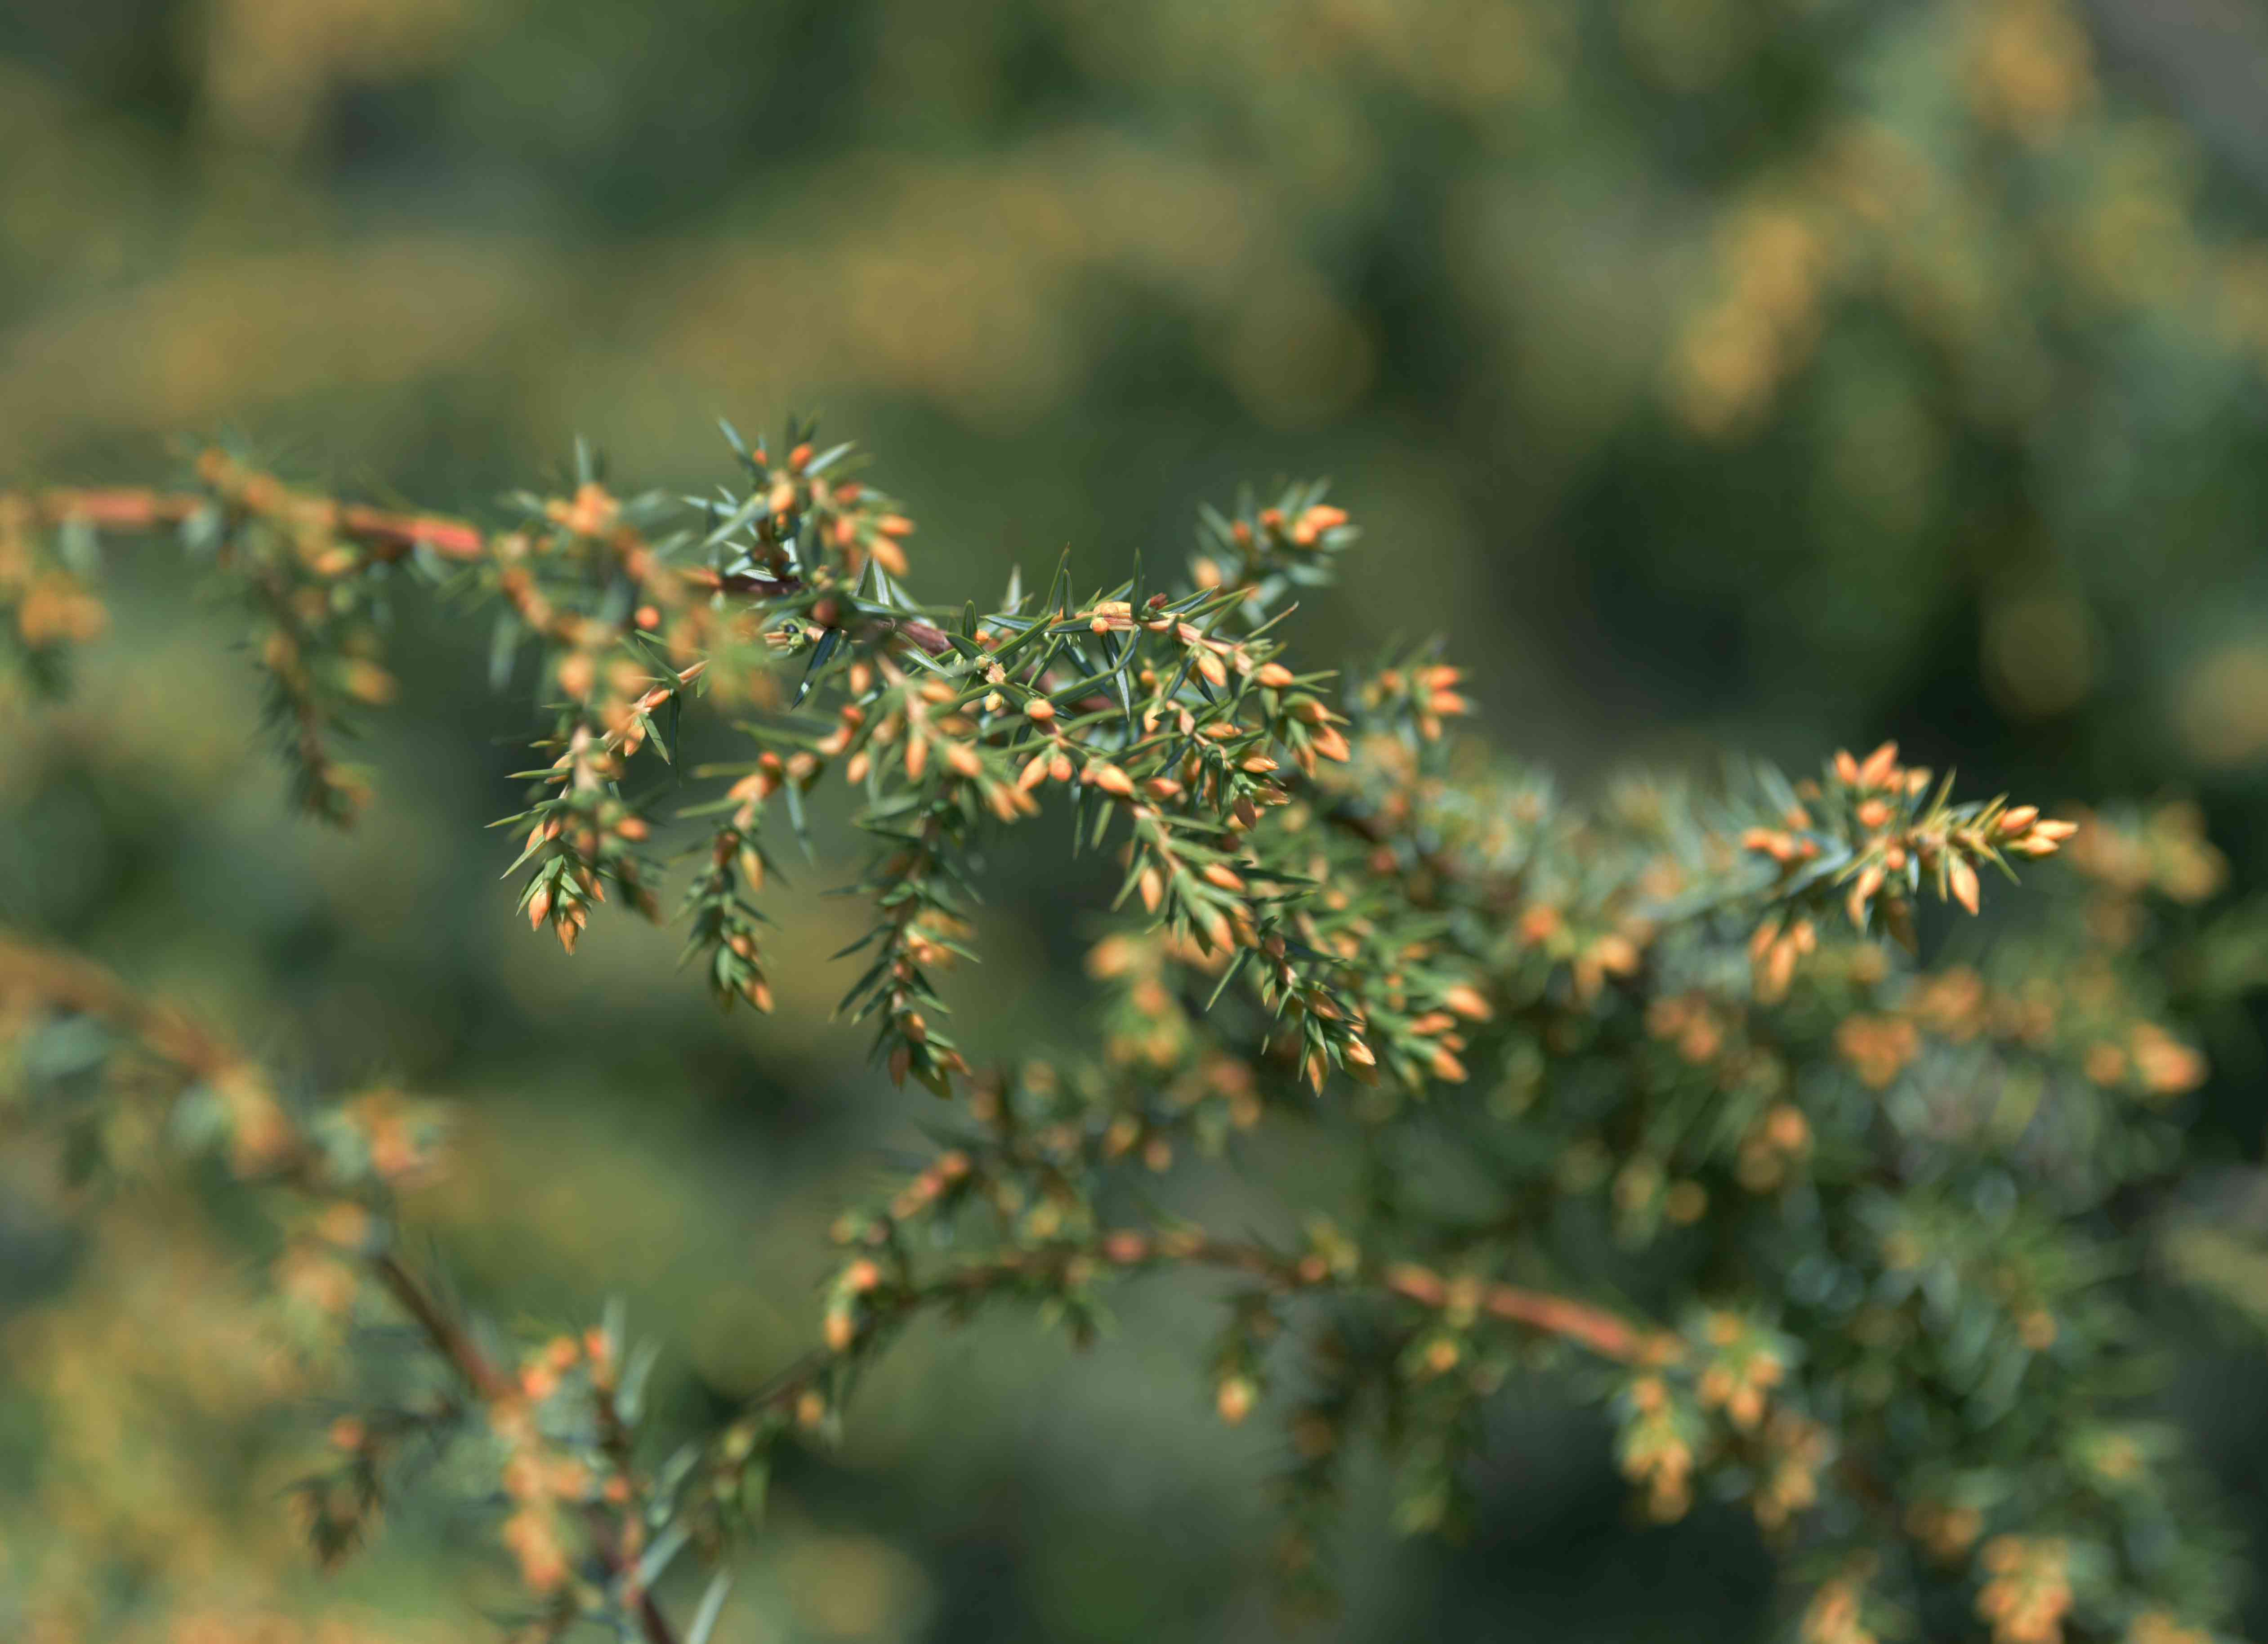 Common juniper 'schneverdinger goldmachangel' branch with small needle-like leaves and orange buds closeup